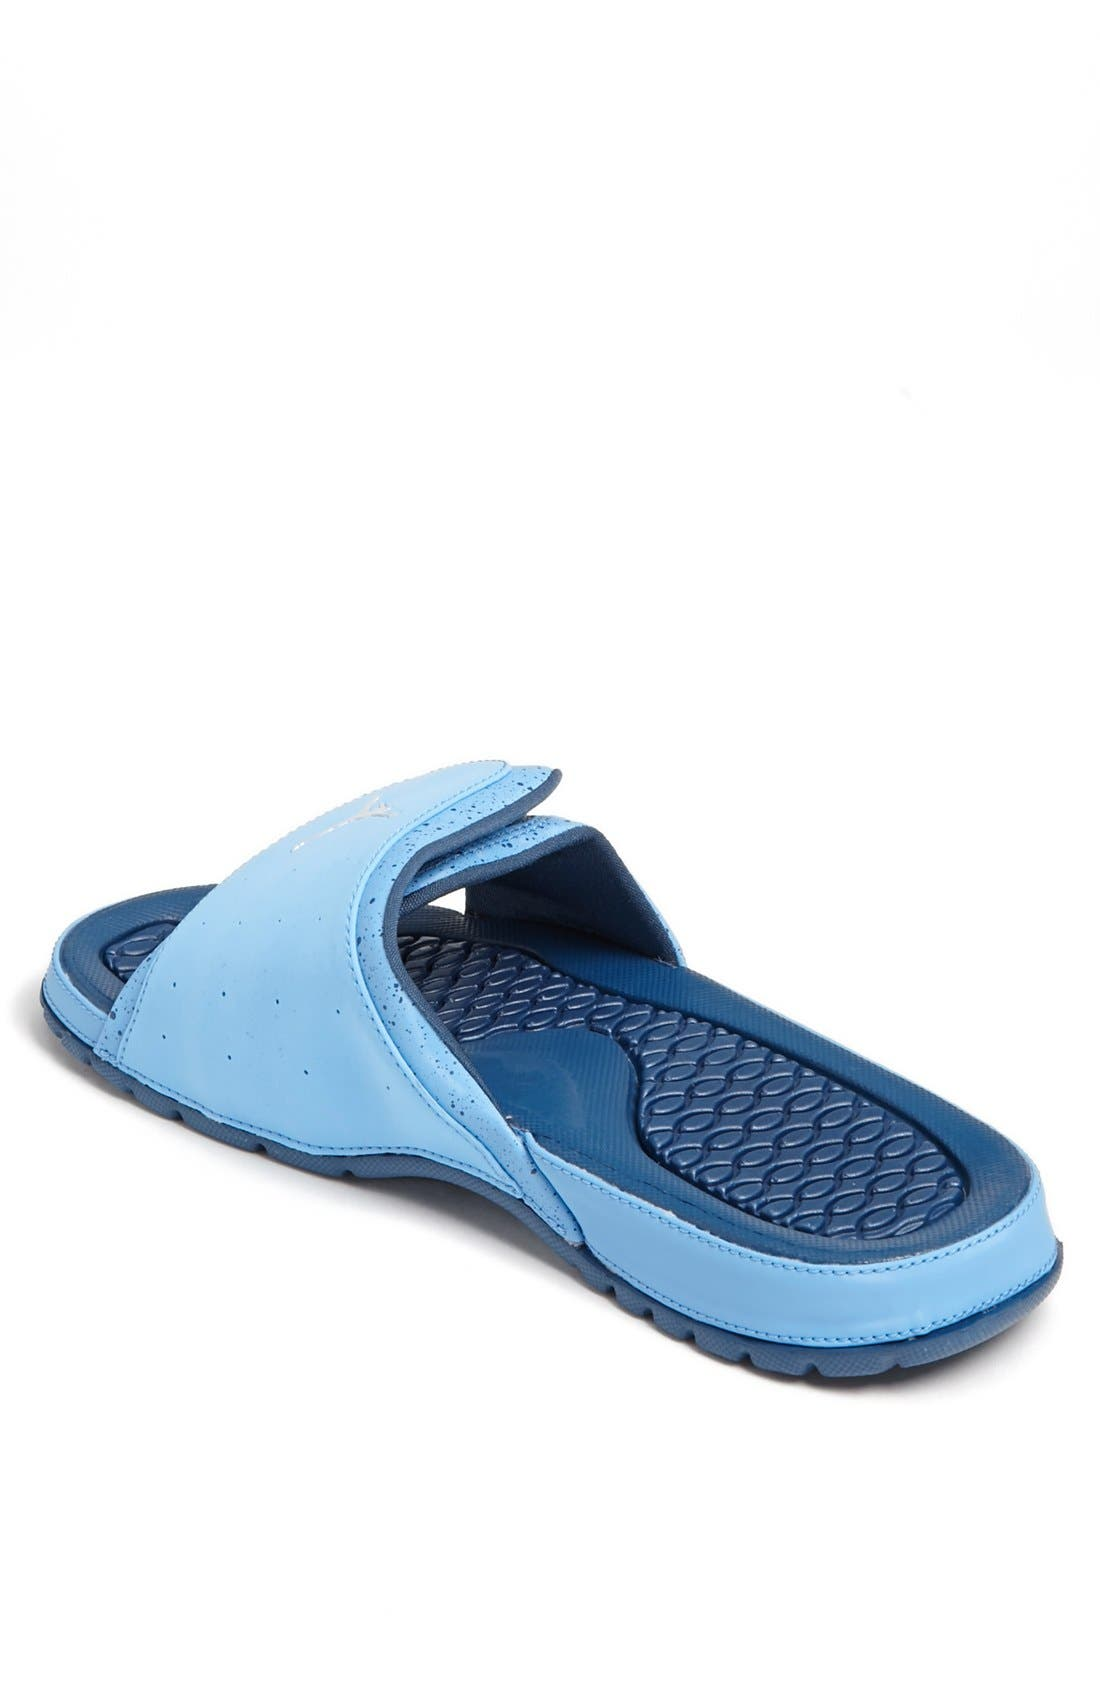 Alternate Image 2  - Nike 'Jordan Hydro II' Sandal (Men)